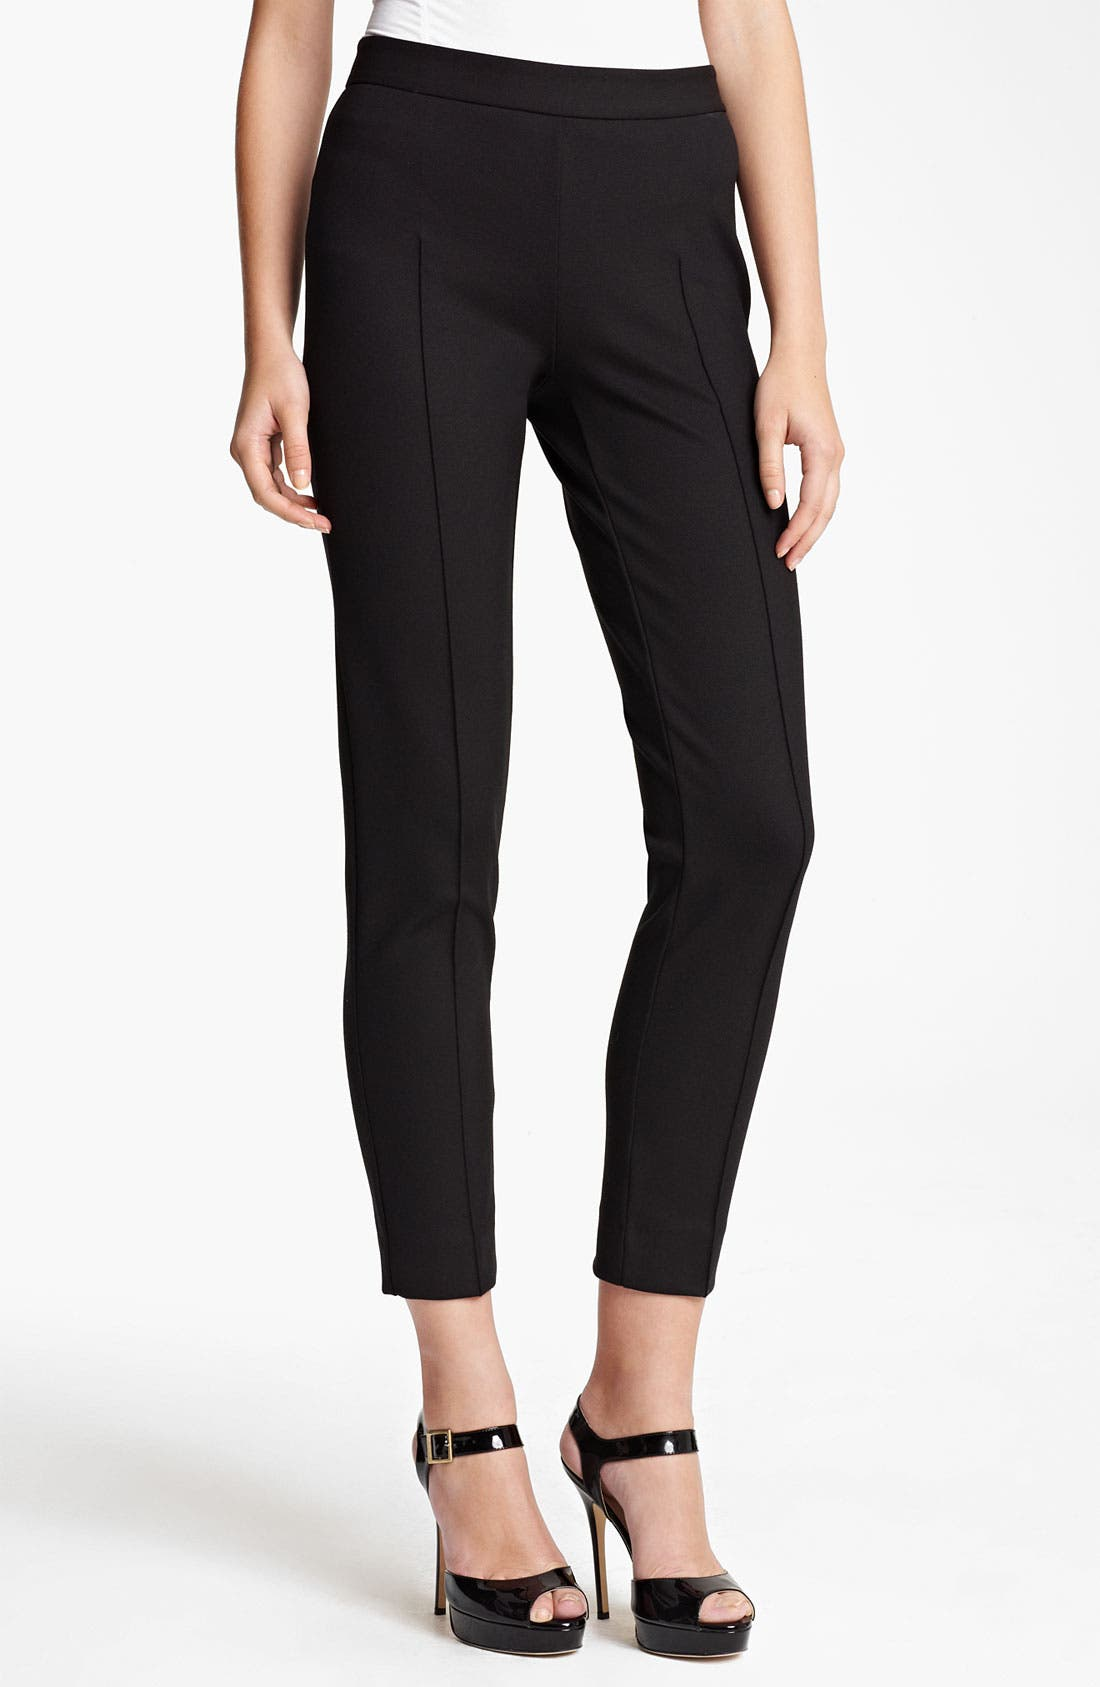 Alternate Image 1 Selected - Moschino Cheap & Chic Stretch Jersey Knit Pants